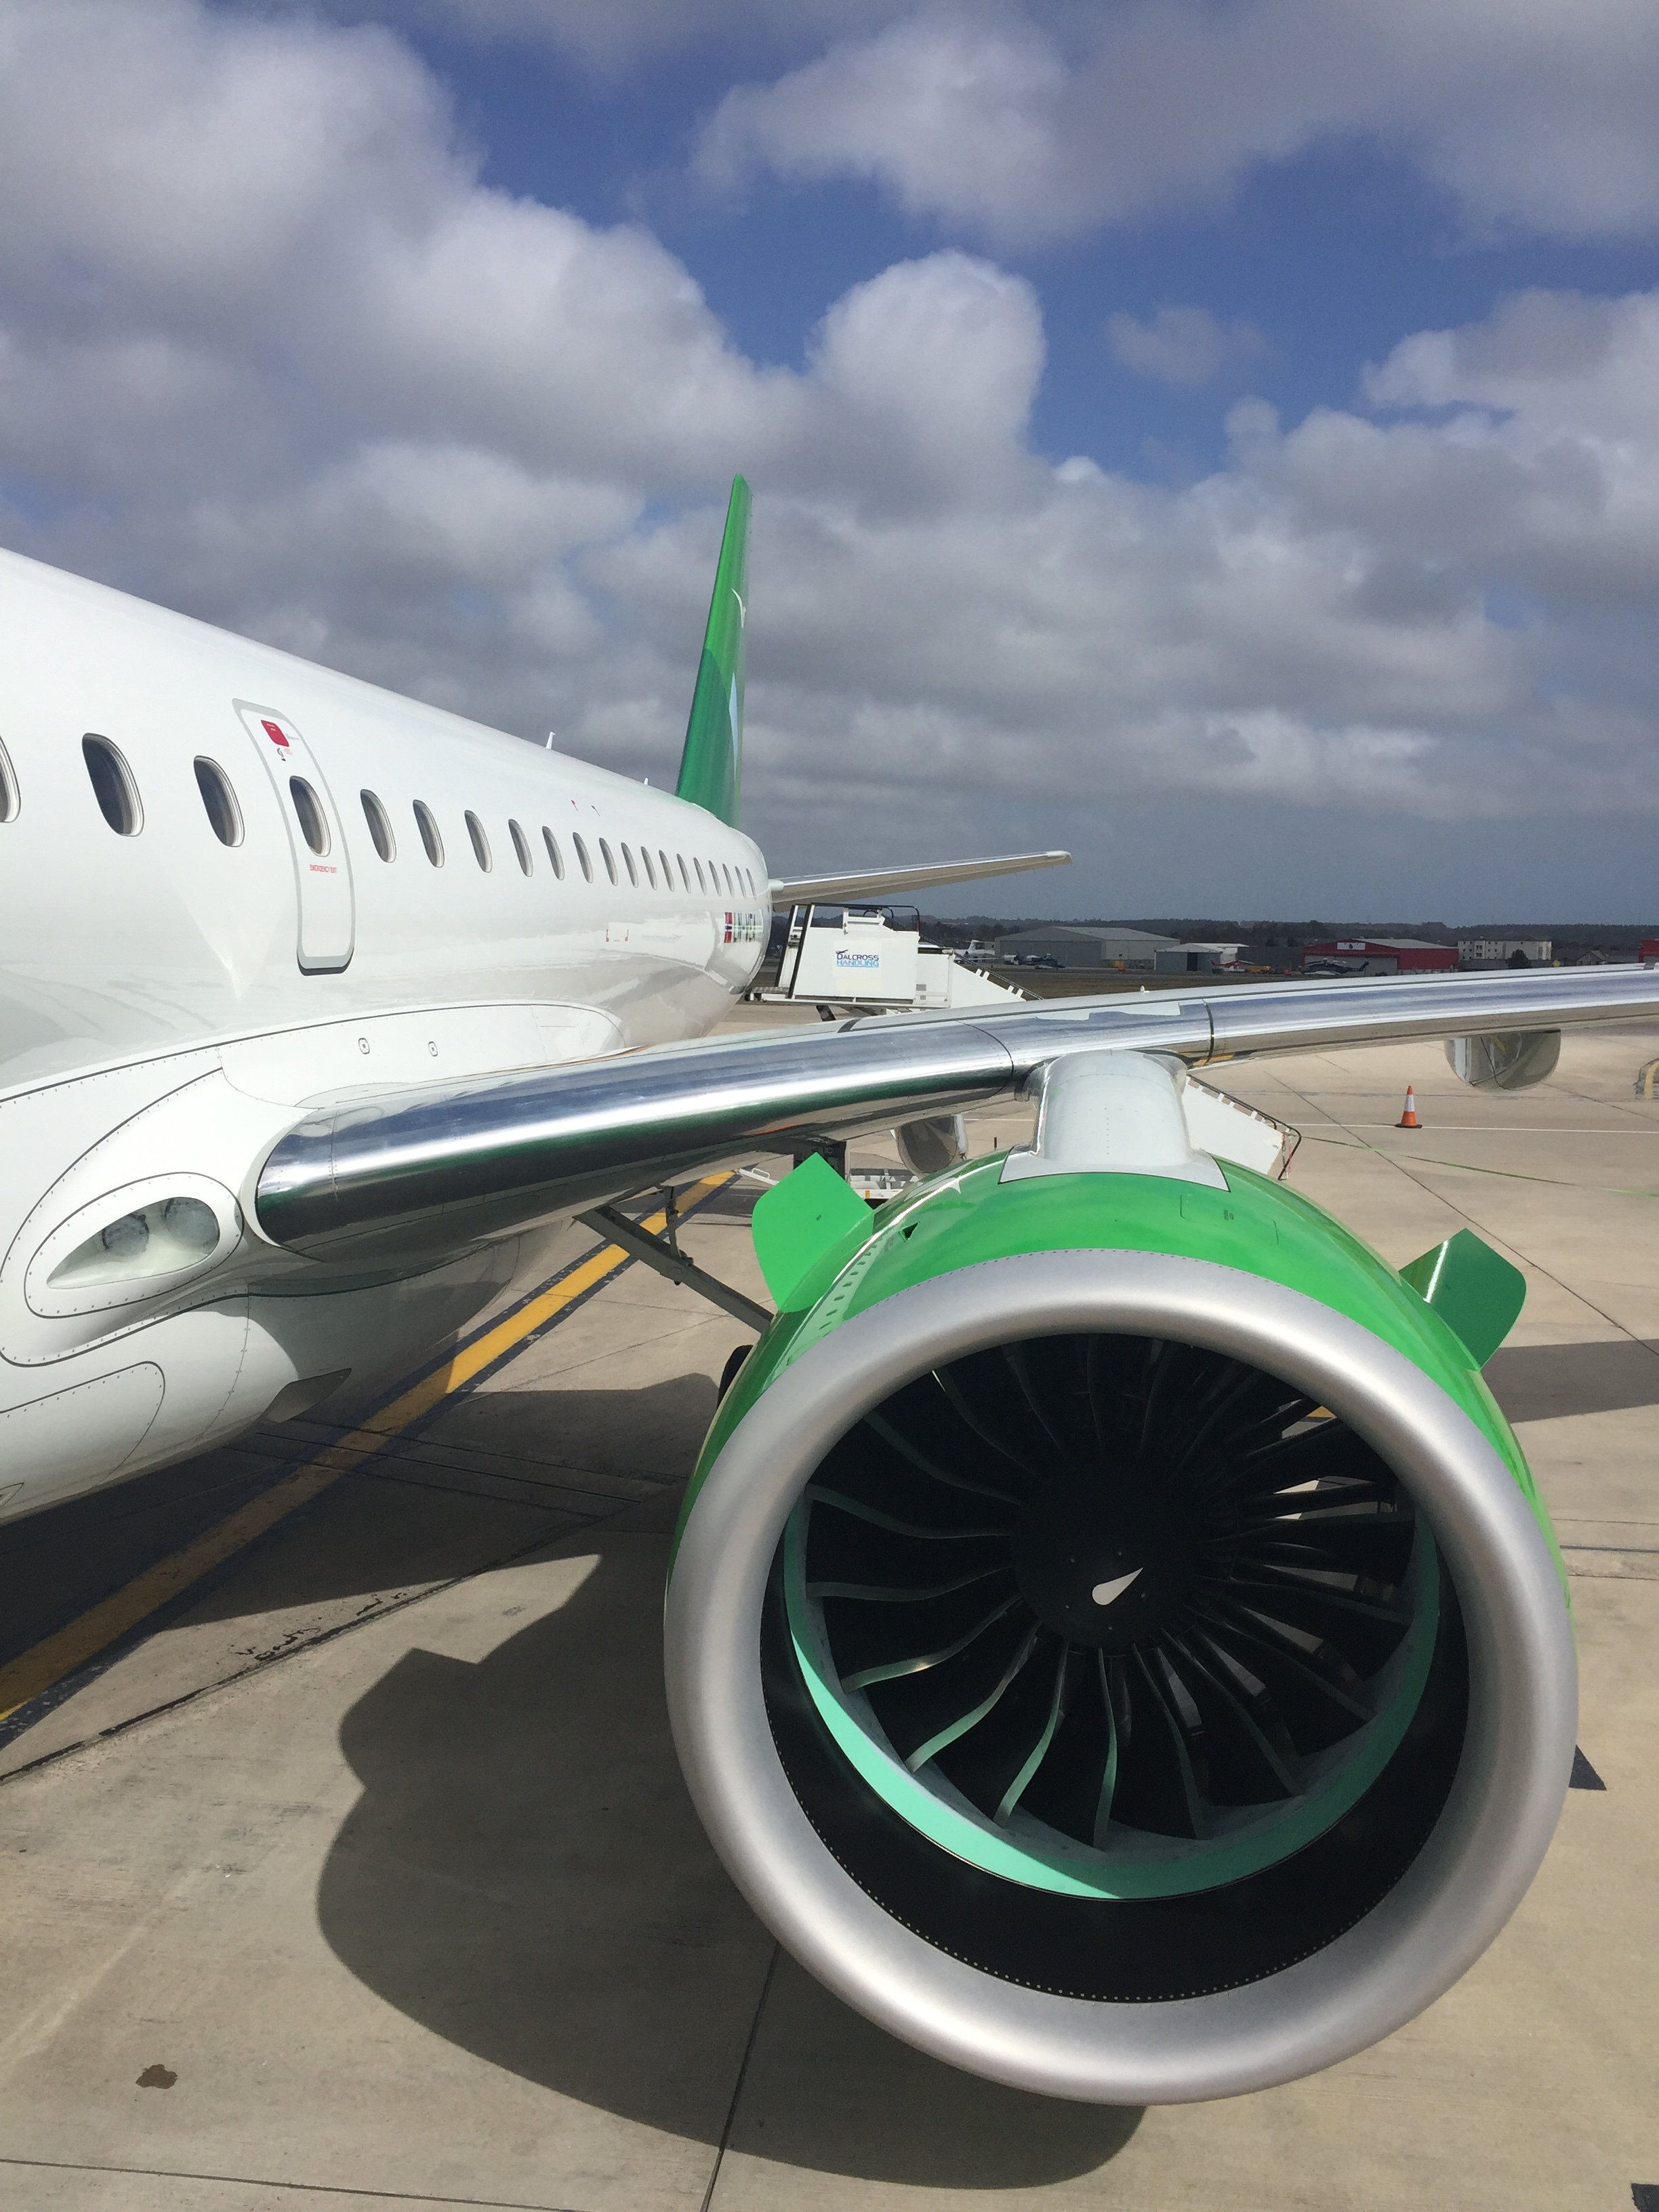 A close look at the engine of the Embraer E2 jet